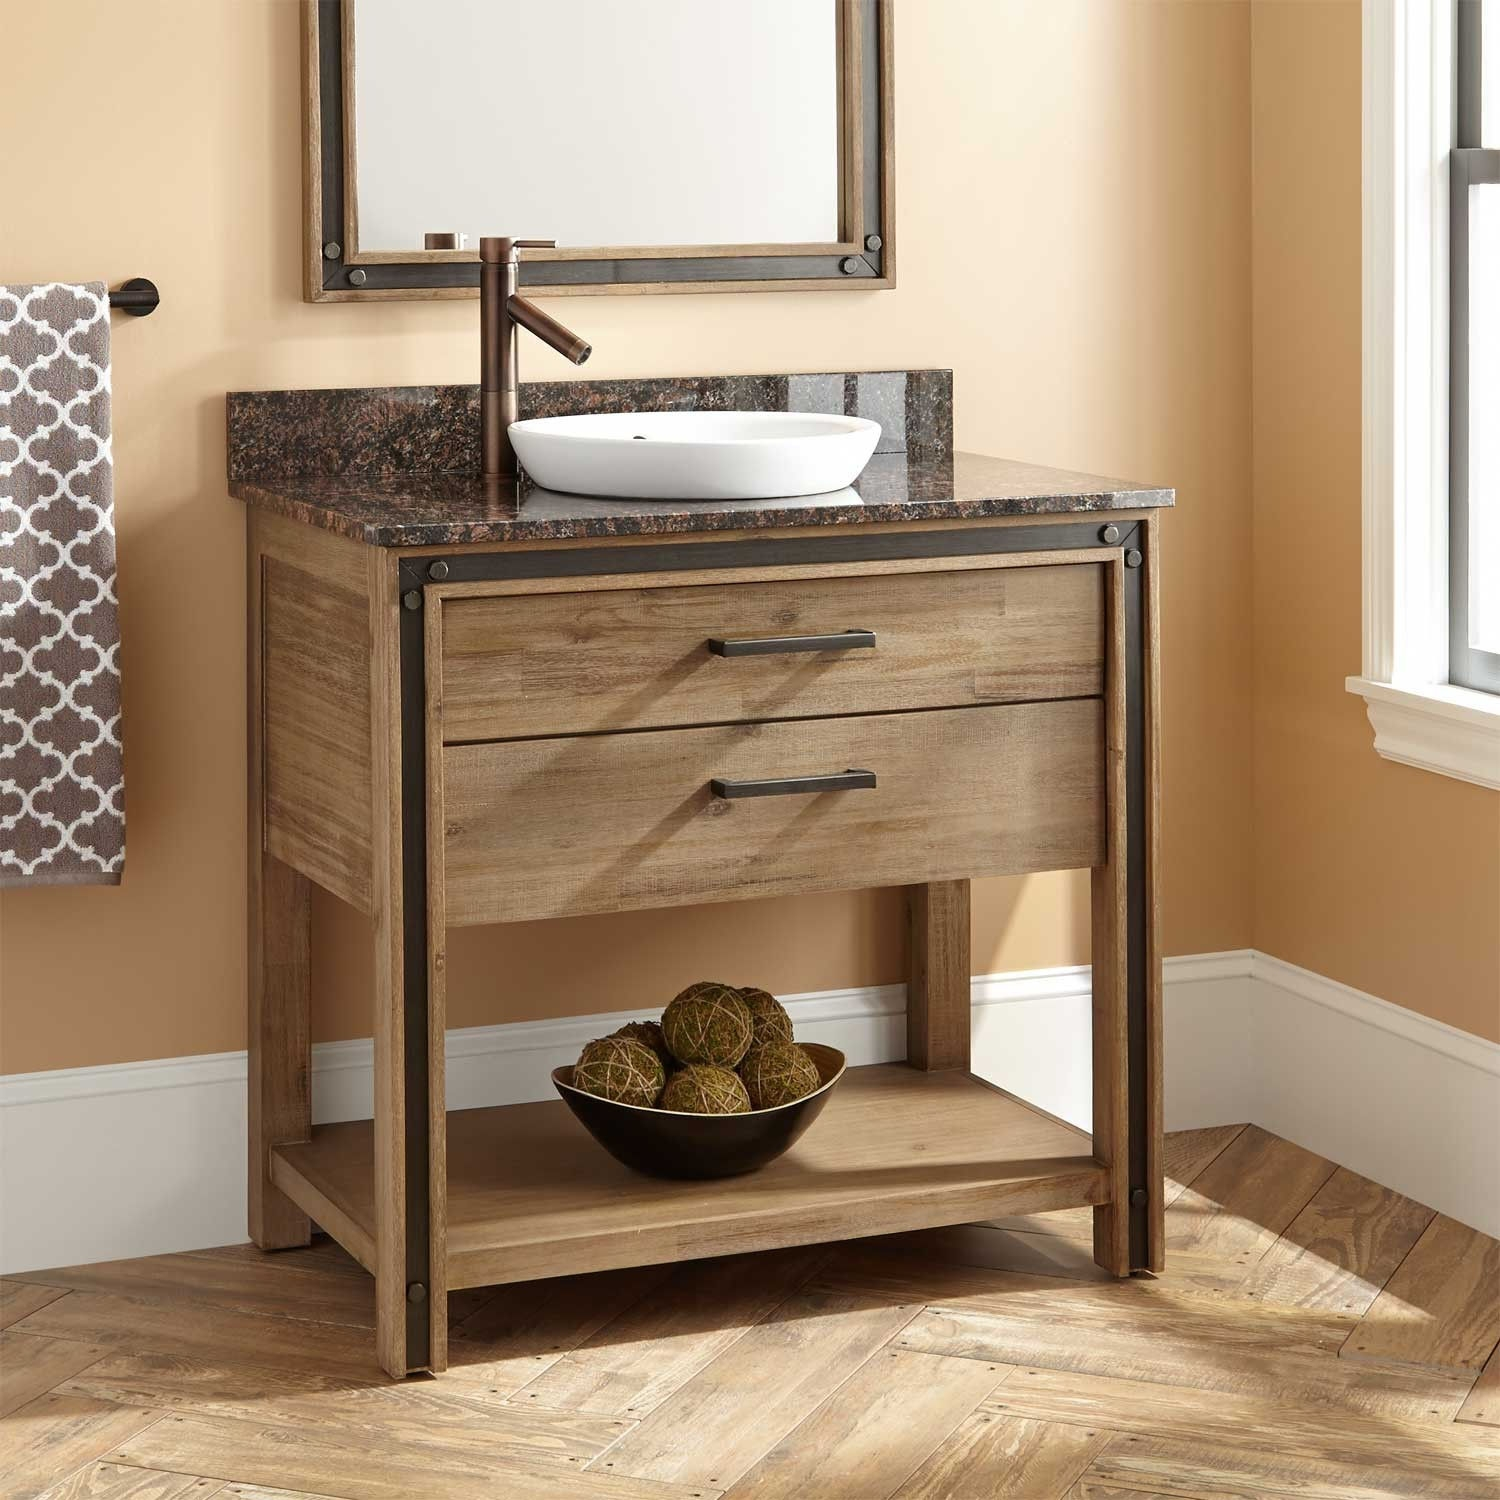 Permalink to Bathroom Vanity Cabinets Pictures